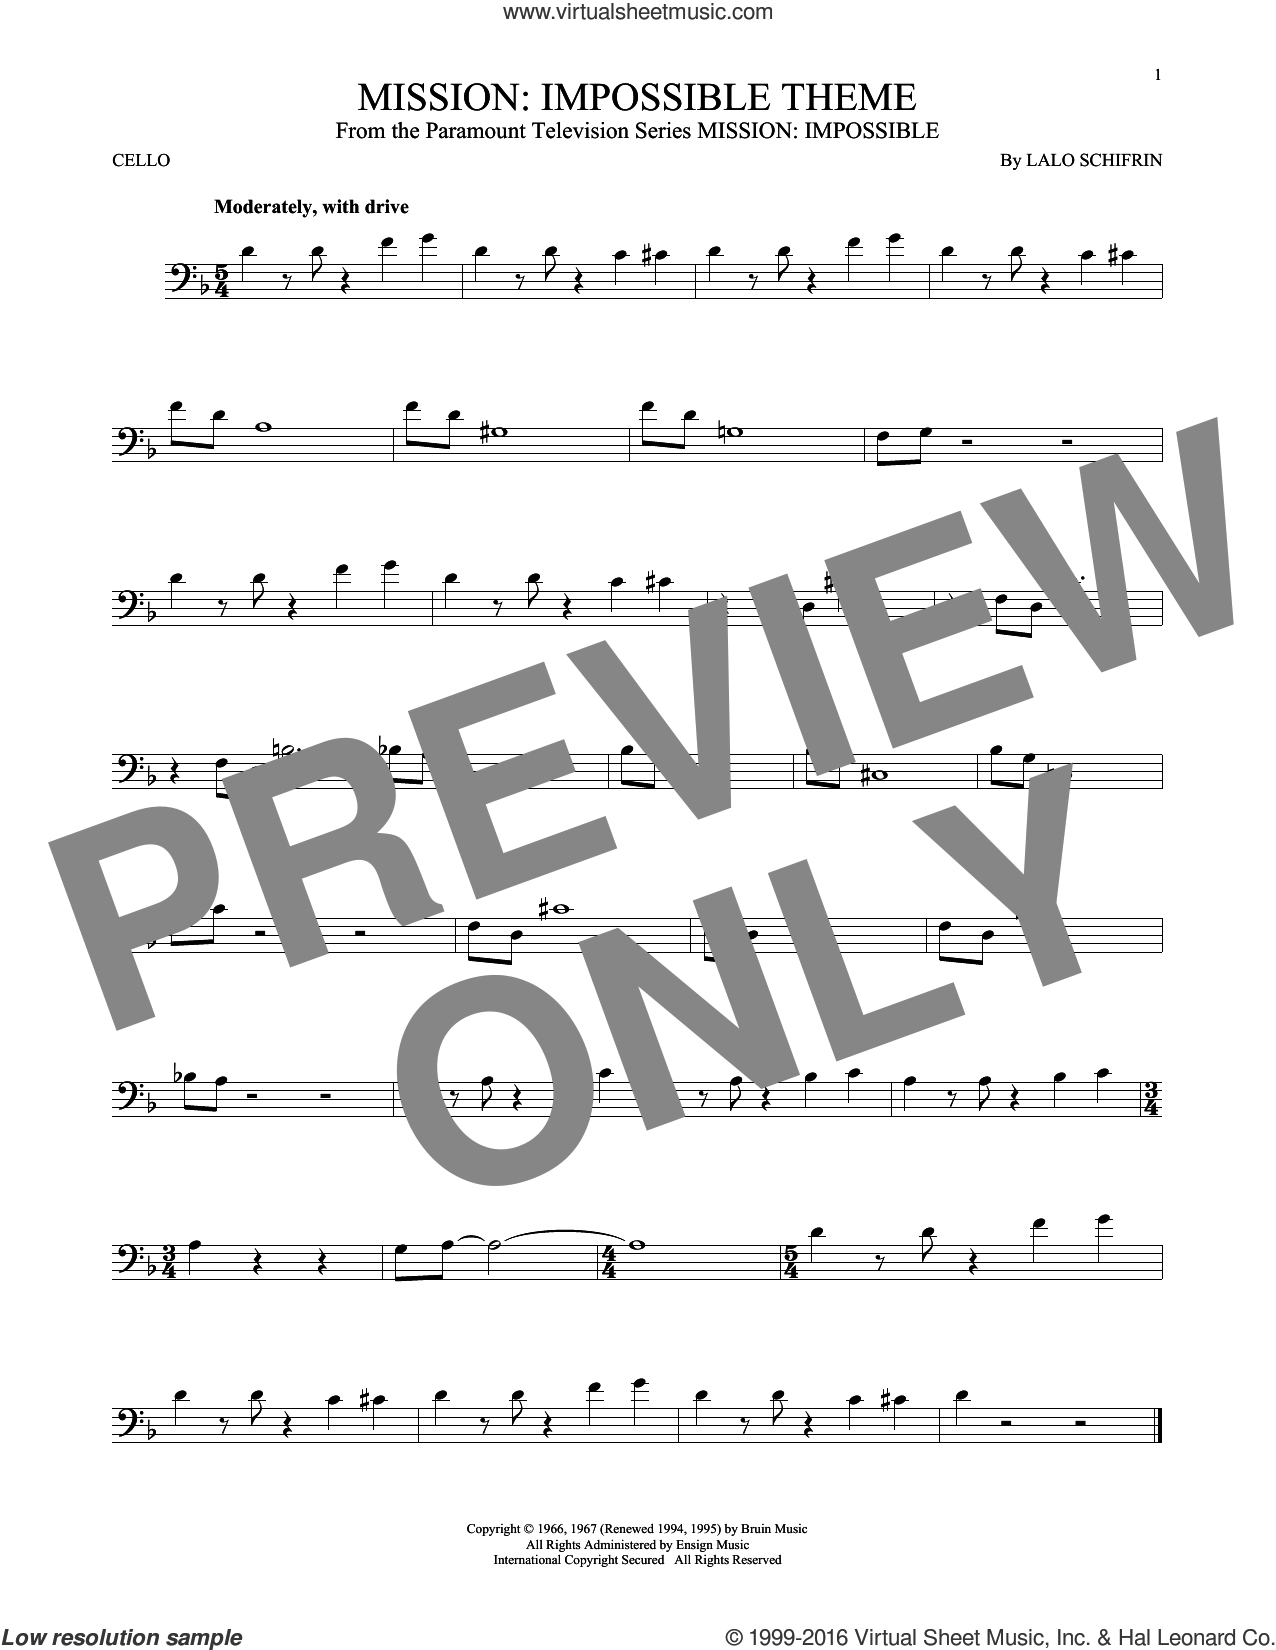 Mission: Impossible Theme sheet music for cello solo by Lalo Schifrin, intermediate skill level